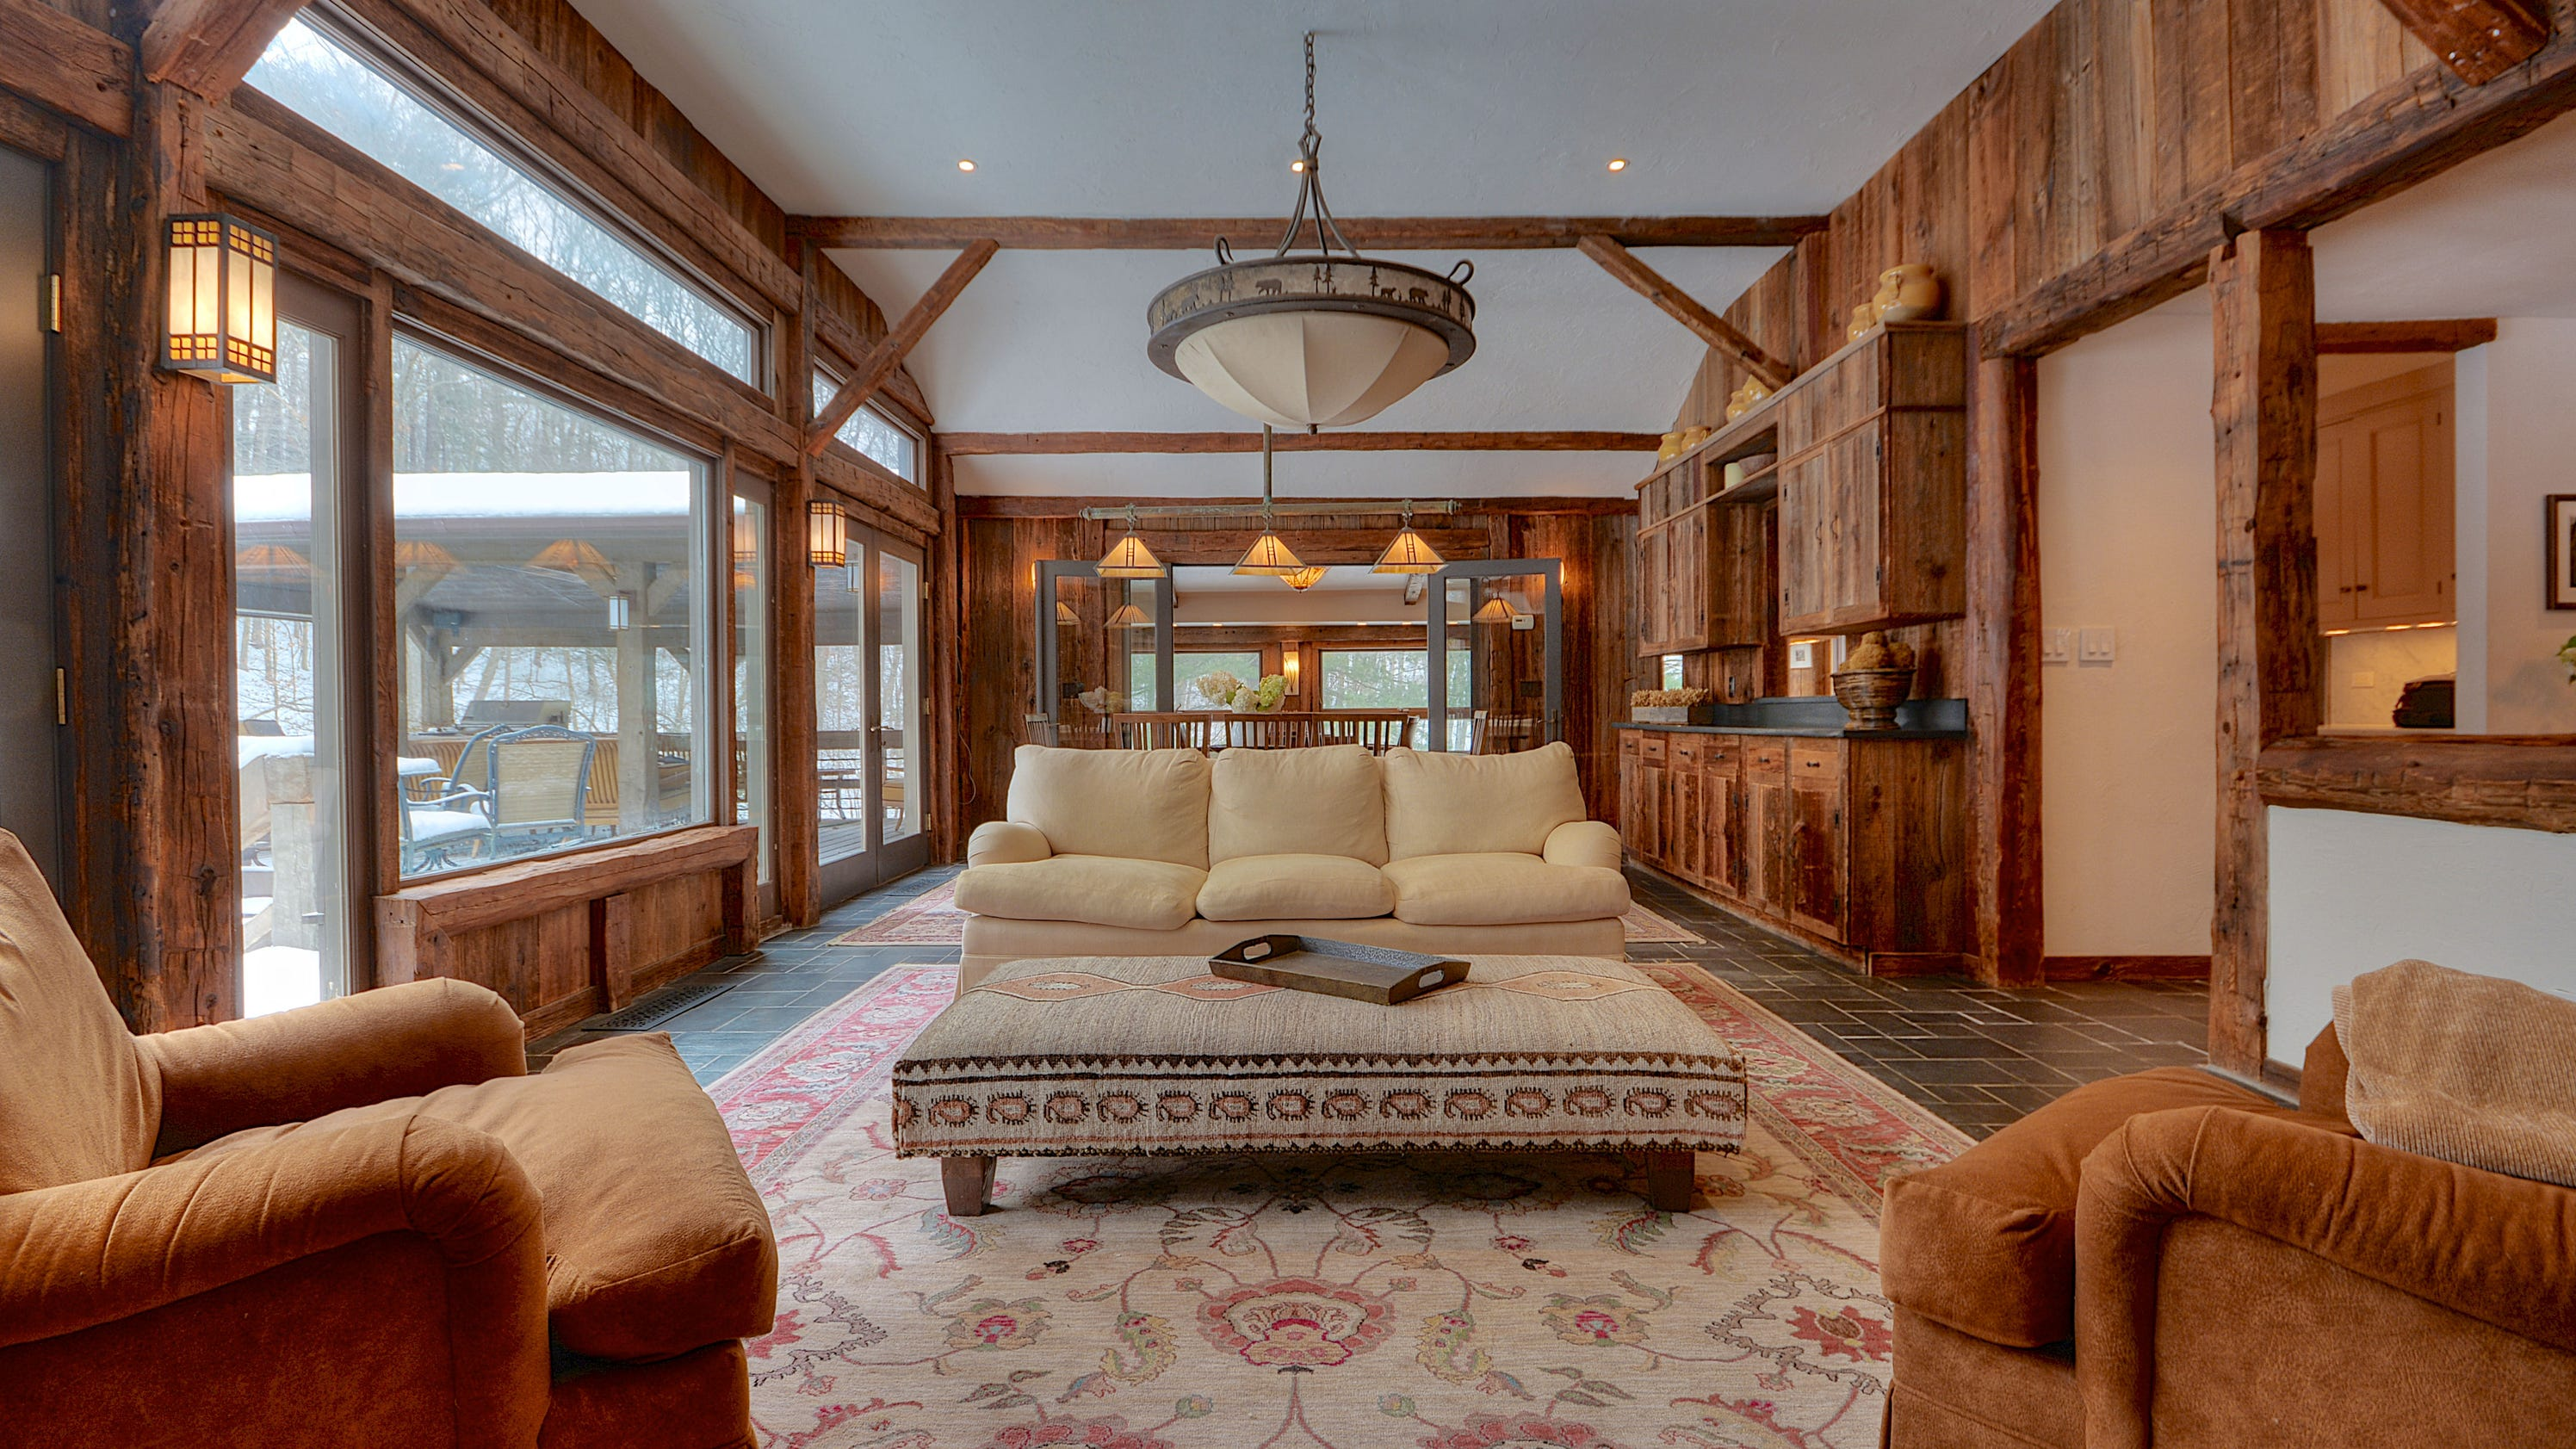 Bedford rustic retreat for sale for Rustic retreat